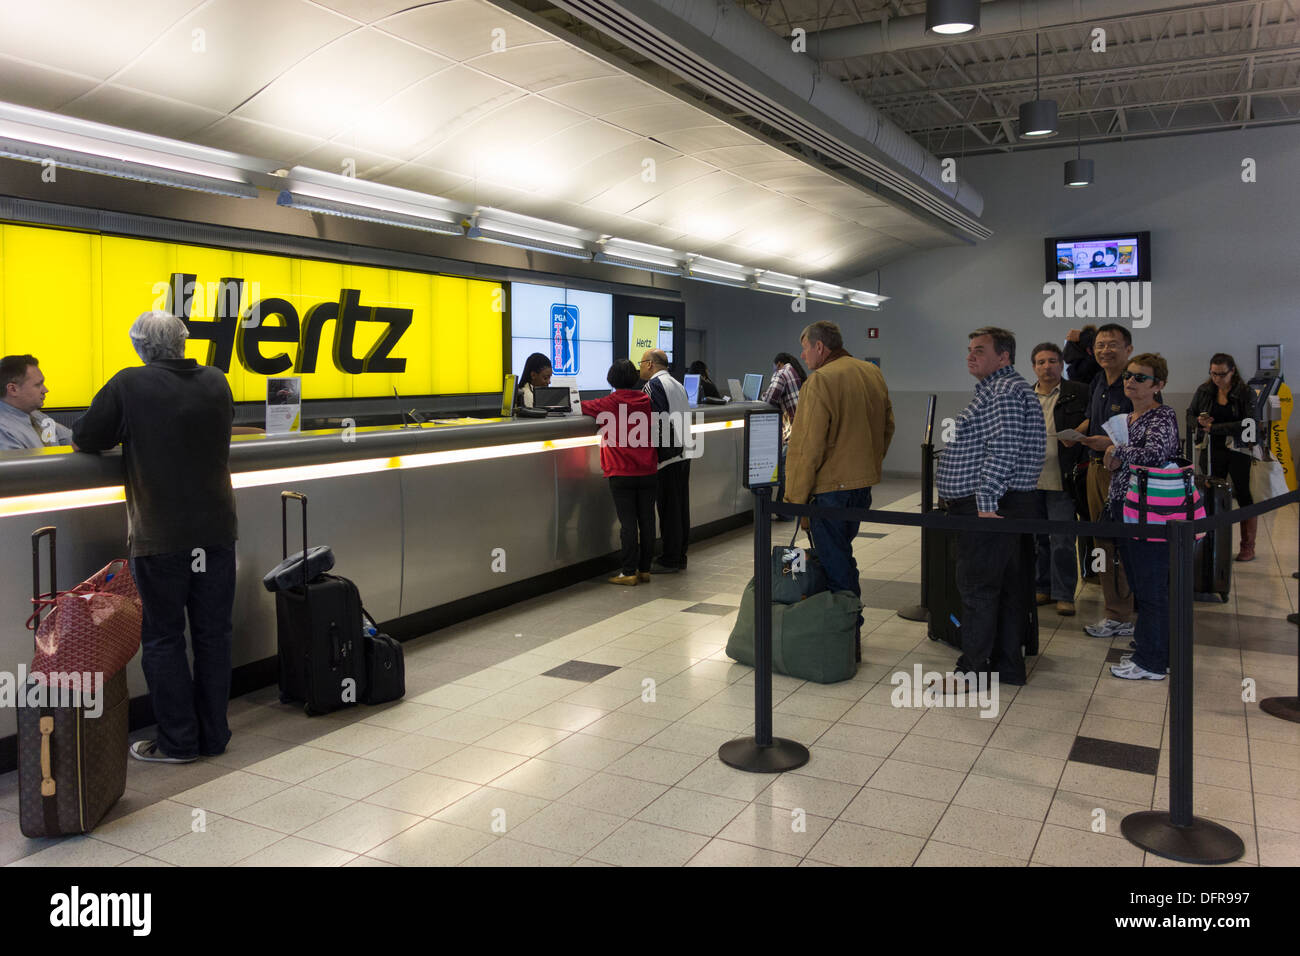 hertz car hire counter jfk airport new york usa stock. Black Bedroom Furniture Sets. Home Design Ideas